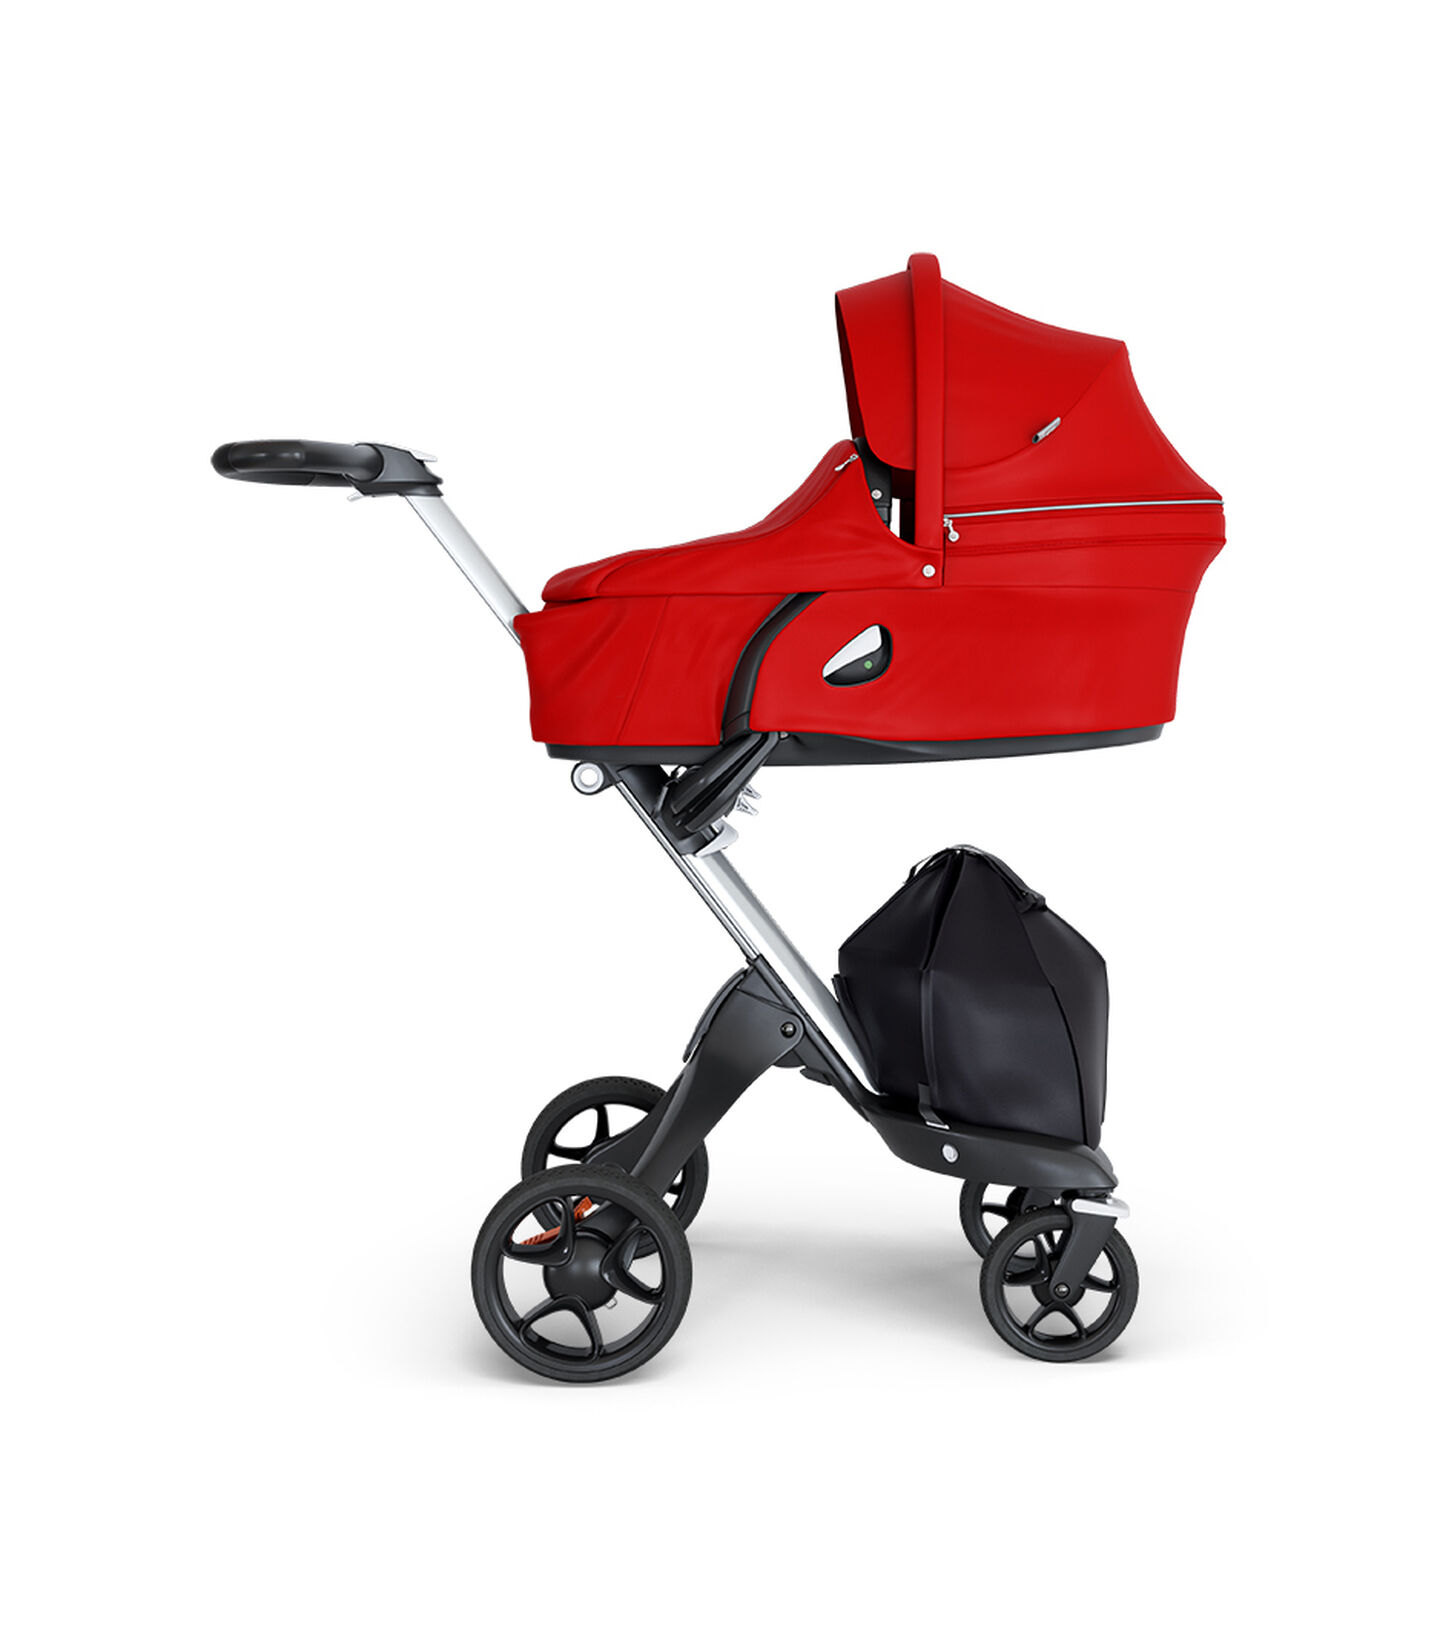 Stokke® Xplory® wtih Black Chassis and Leatherette Black handle. Stokke® Stroller Carry Cot Red.